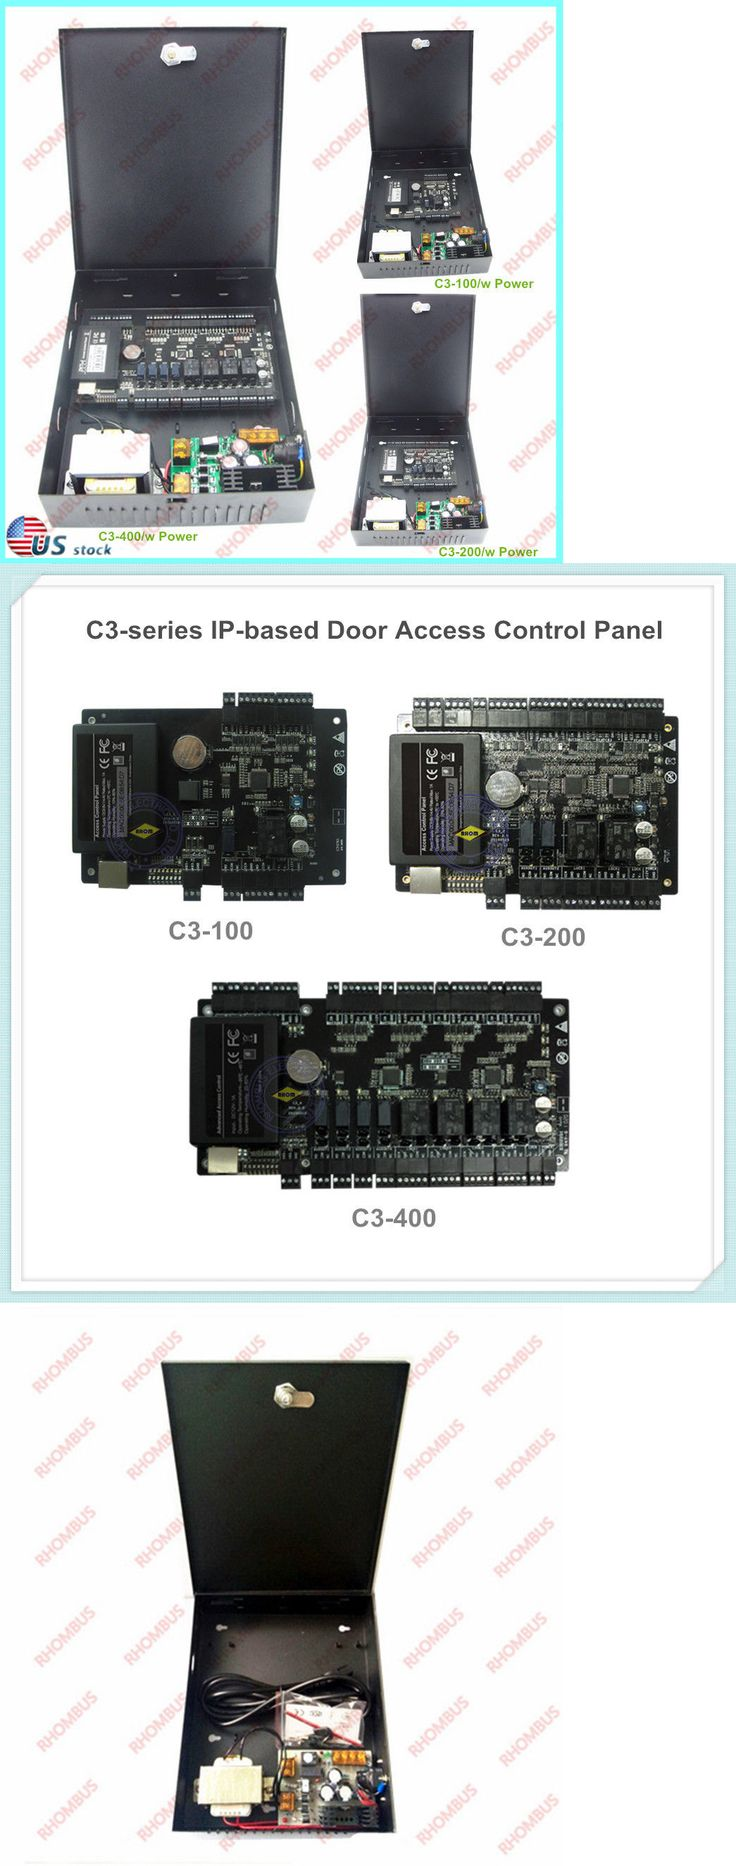 Other Home Security 20589: Zk Tcp Ip Rs485 Zksoftware C3 Series Ip-Based Door Access Control Panel W Power -> BUY IT NOW ONLY: $106.95 on eBay!